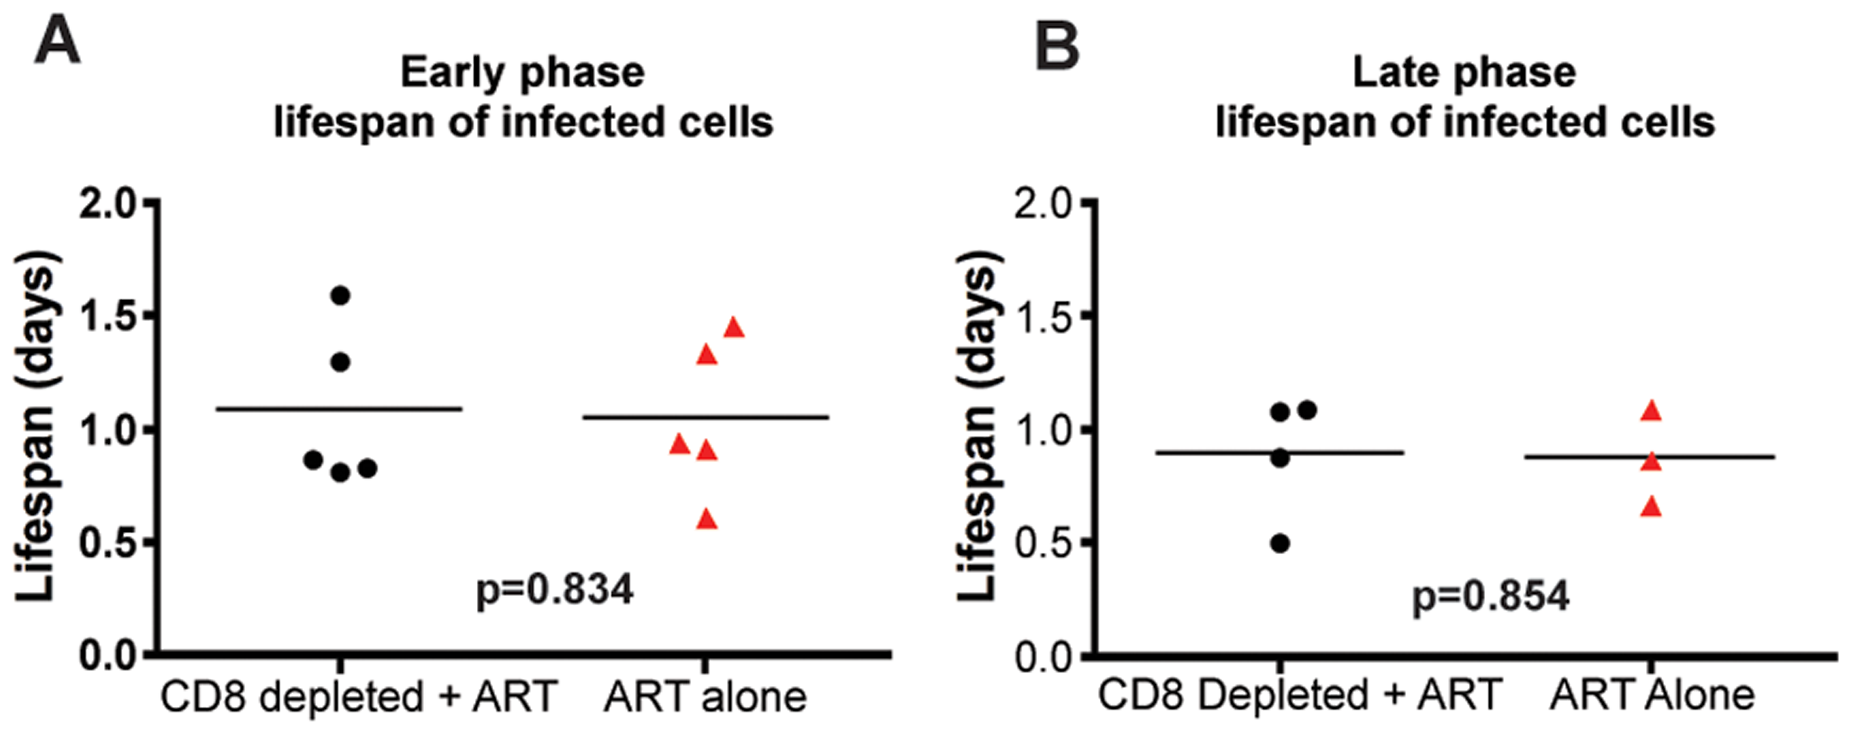 CD8+ lymphocyte depletion does not affect the lifespan of infected cells during SIV infection.